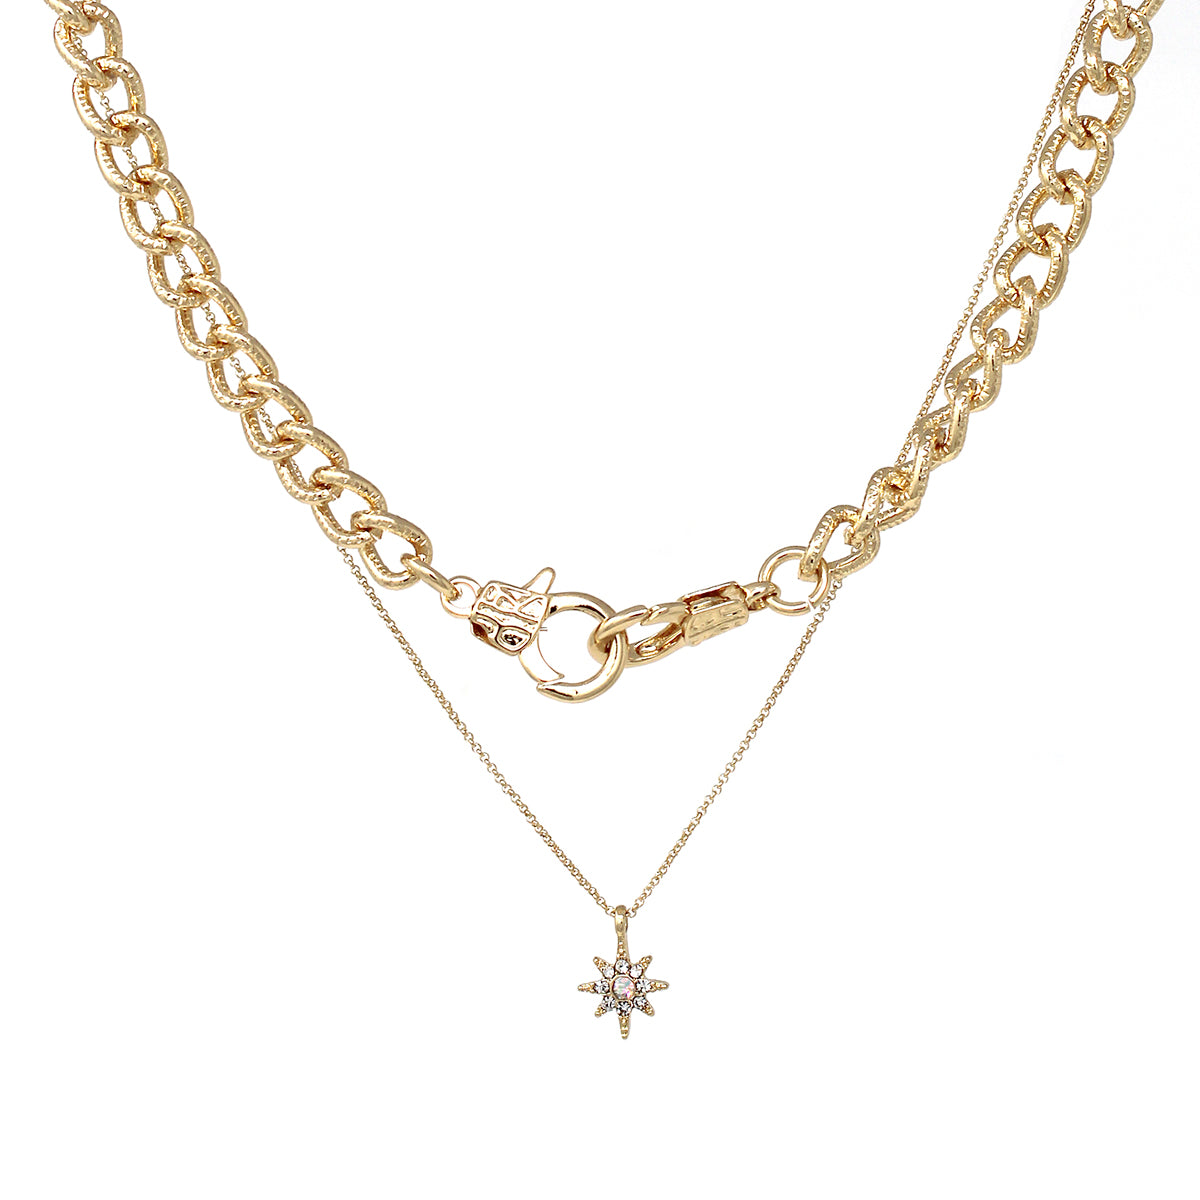 Textured Chain And Rhinestone Pave Starburst Pendant Necklace Set